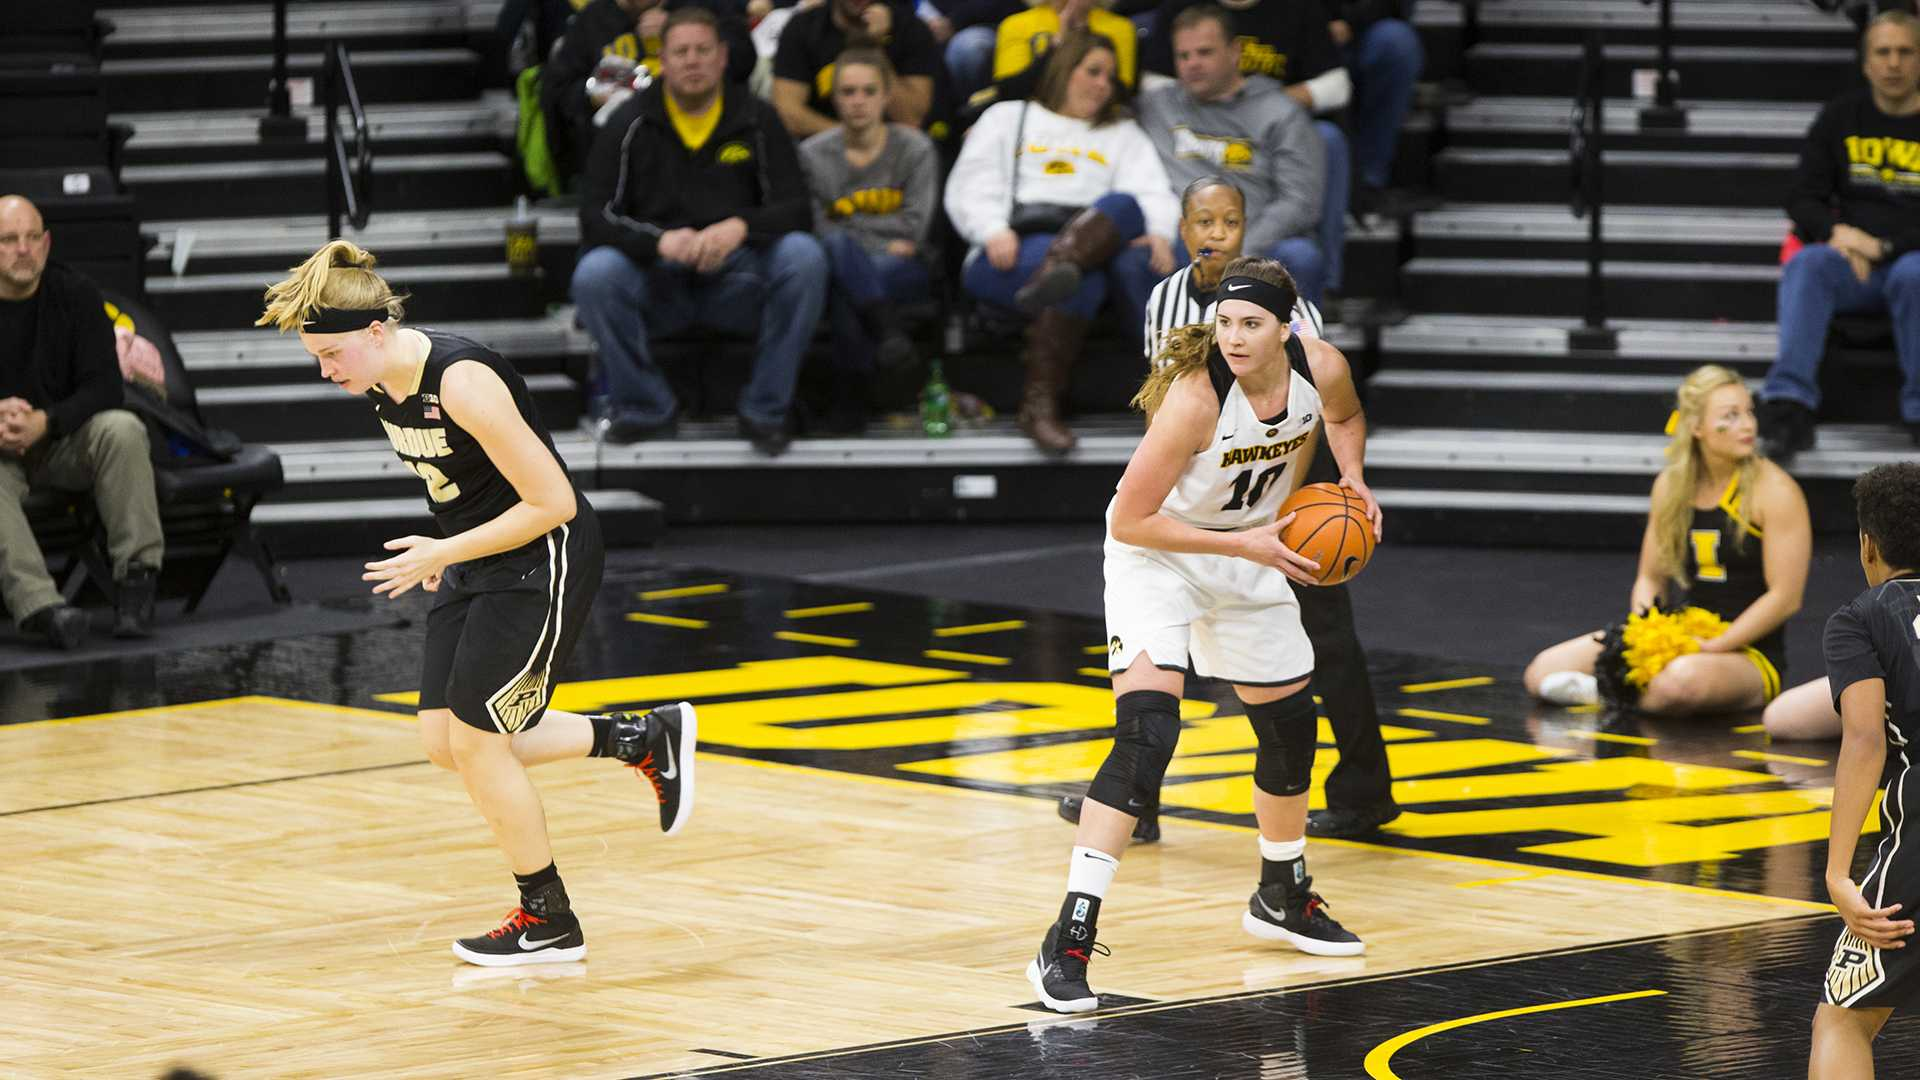 Iowa center Megan Gustafson pulls down a rebound during an Iowa/Purdue women's basketball game in Carver-Hawkeye Arena on Saturday, Jan. 13, 2018. The Boilermakers defeated the Hawkeyes, 76-70. (Joseph Cress/The Daily Iowan)